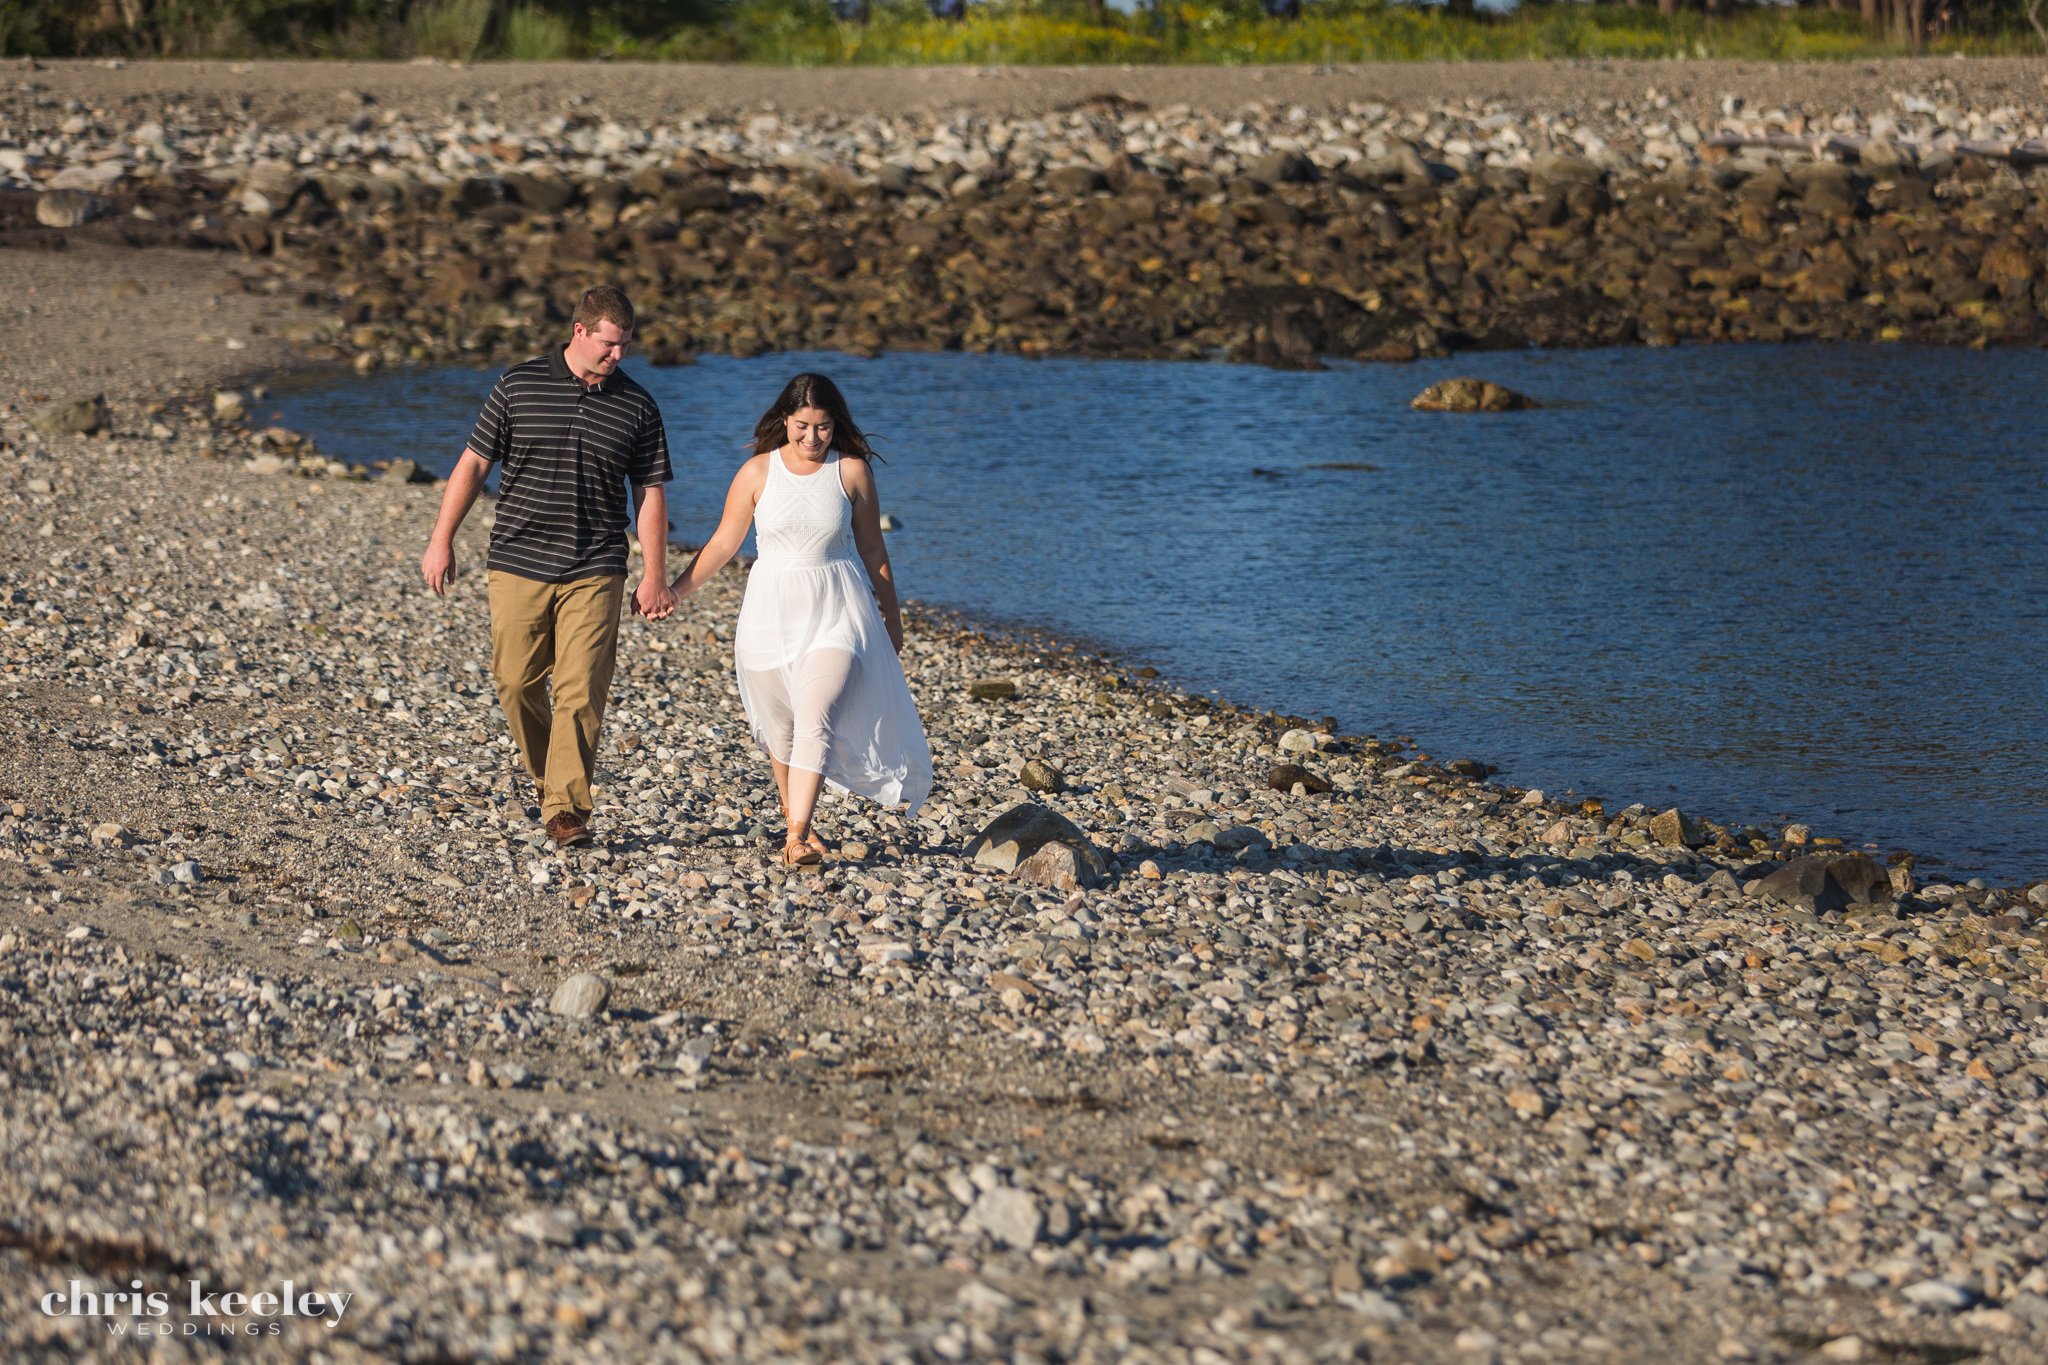 01-engagement-wedding-pictures-rye-new-hampshire-chris-keeley-weddings.jpg